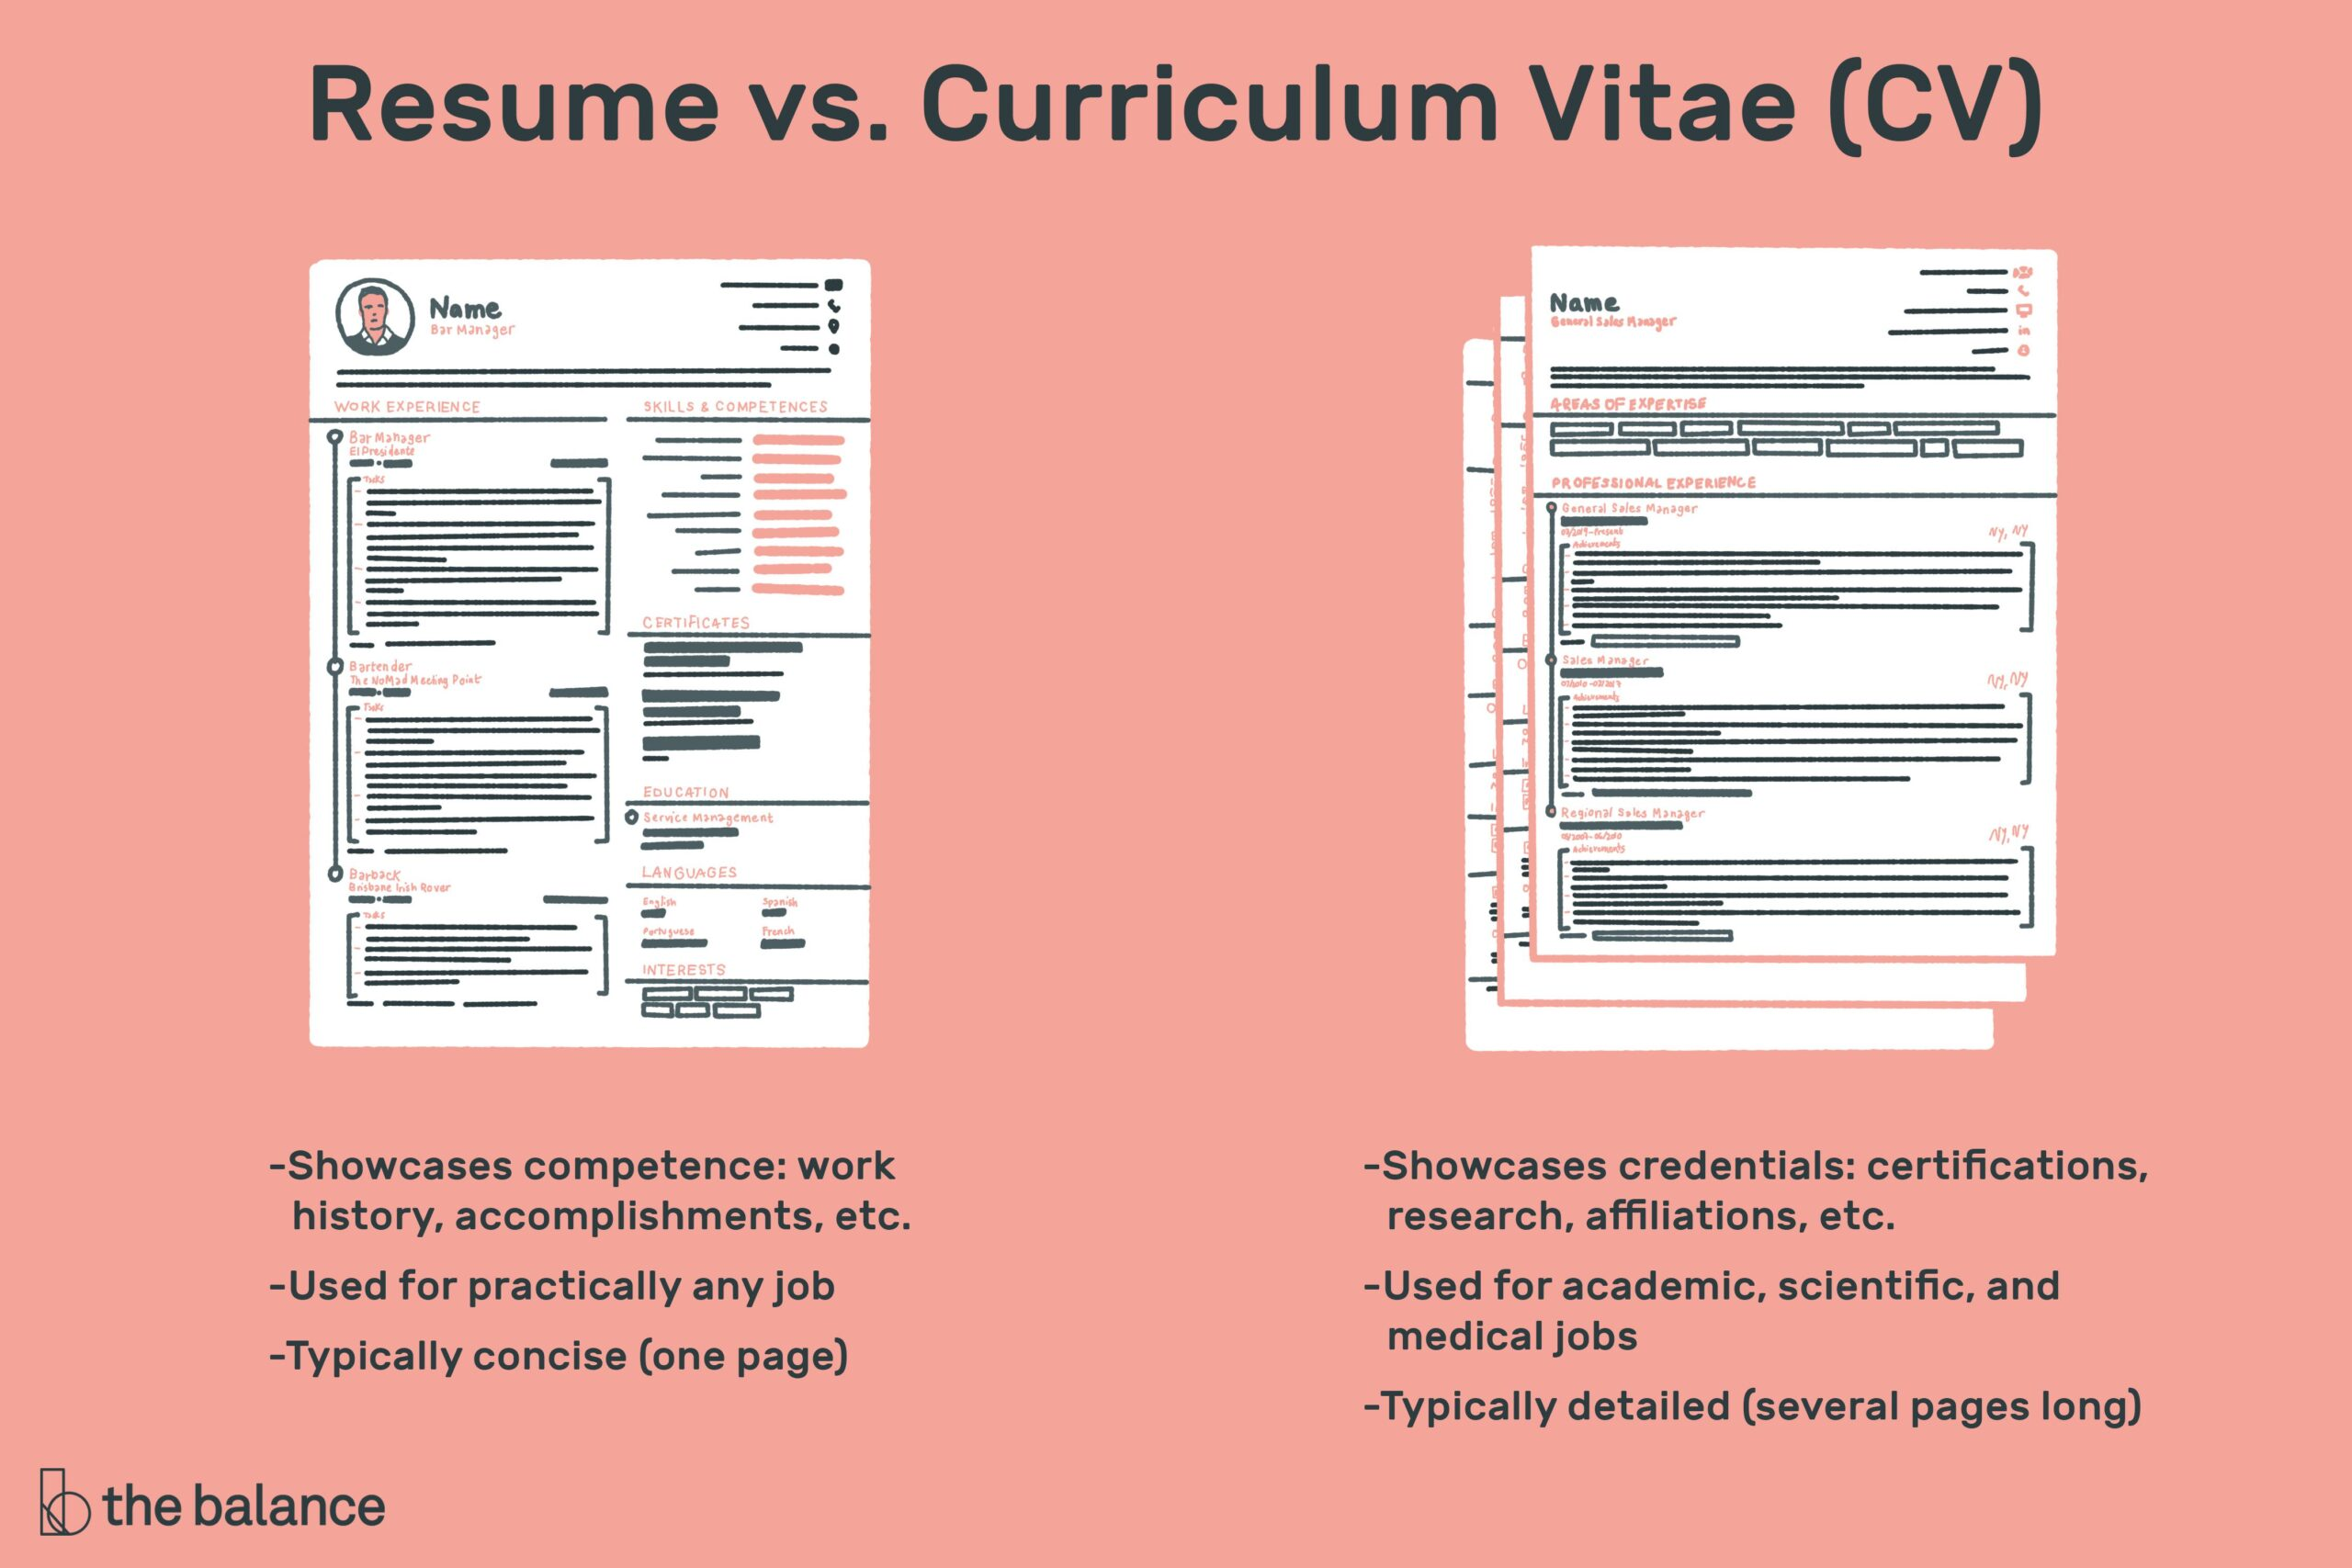 the difference between resume and curriculum vitae compare job description cv vs final Resume Compare Job Description And Resume